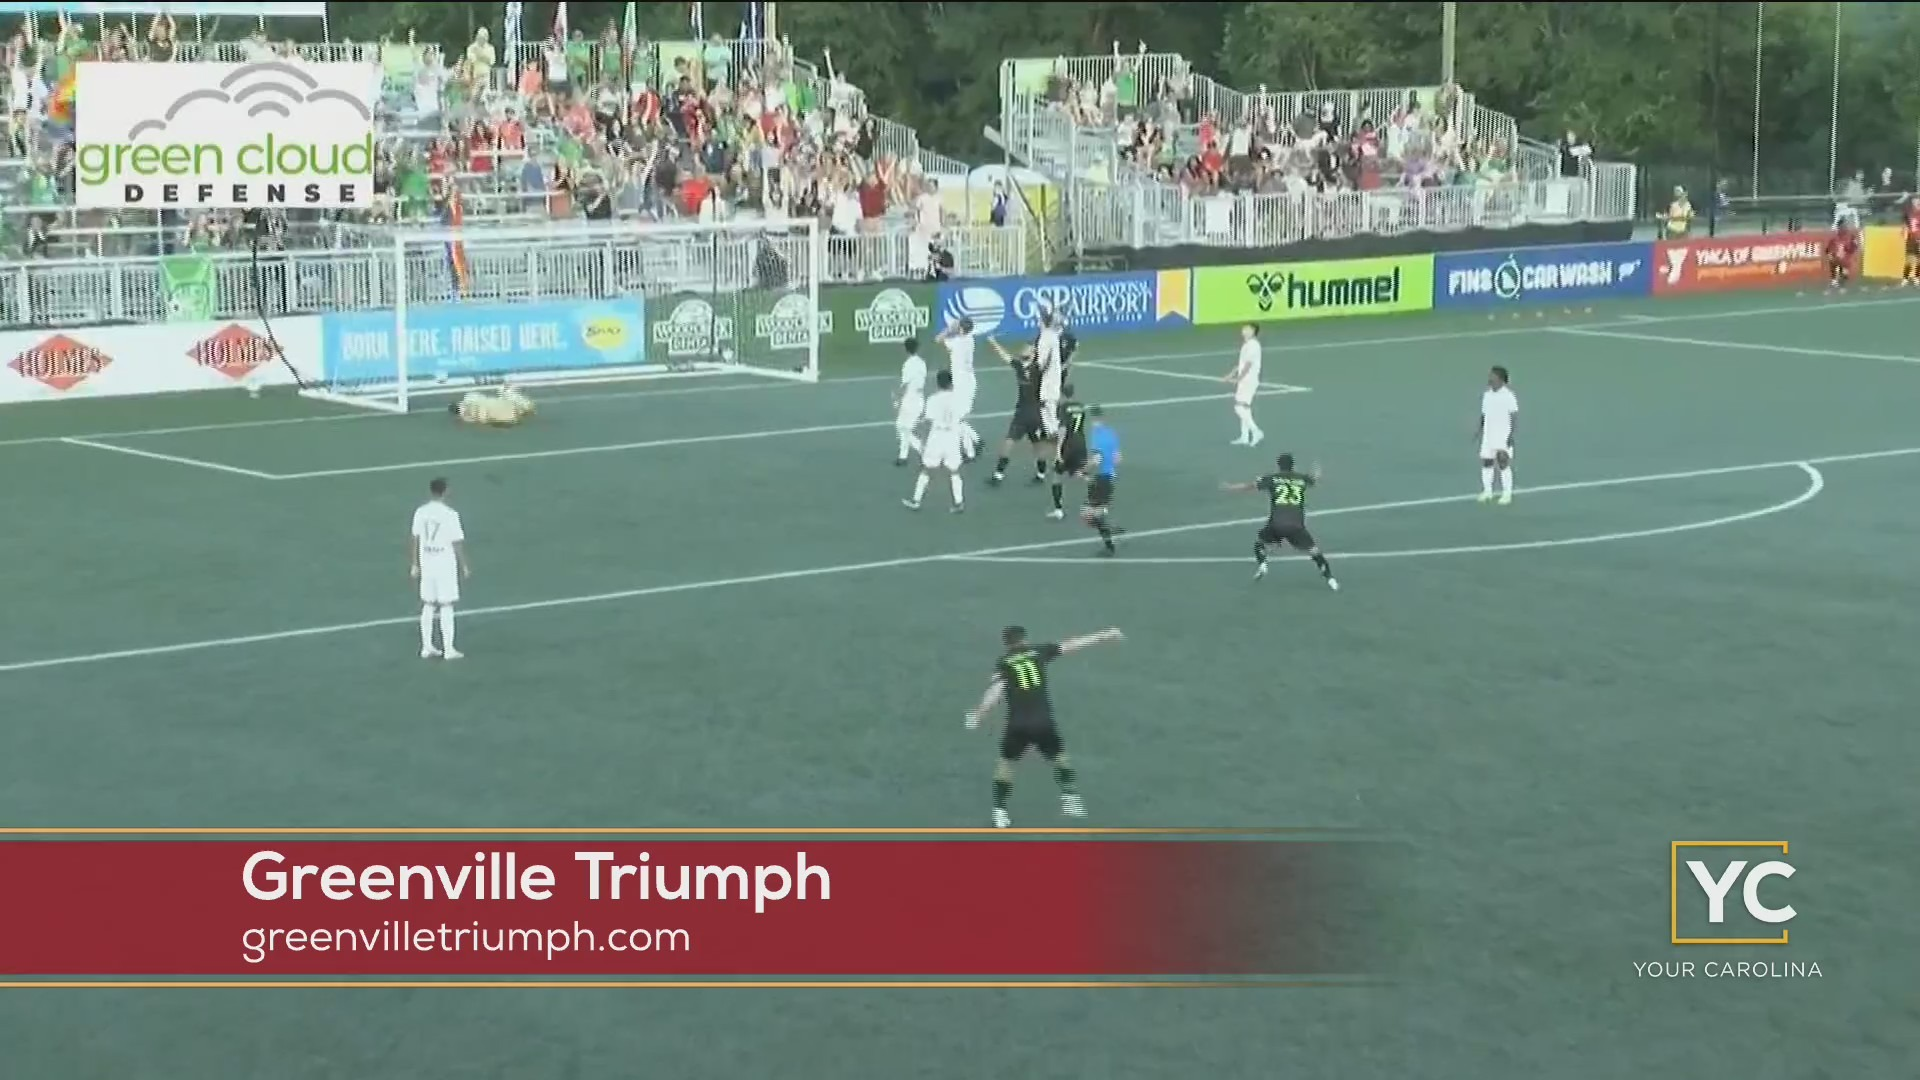 Greenville Triumph Changing The Landscape of Professional Soccer